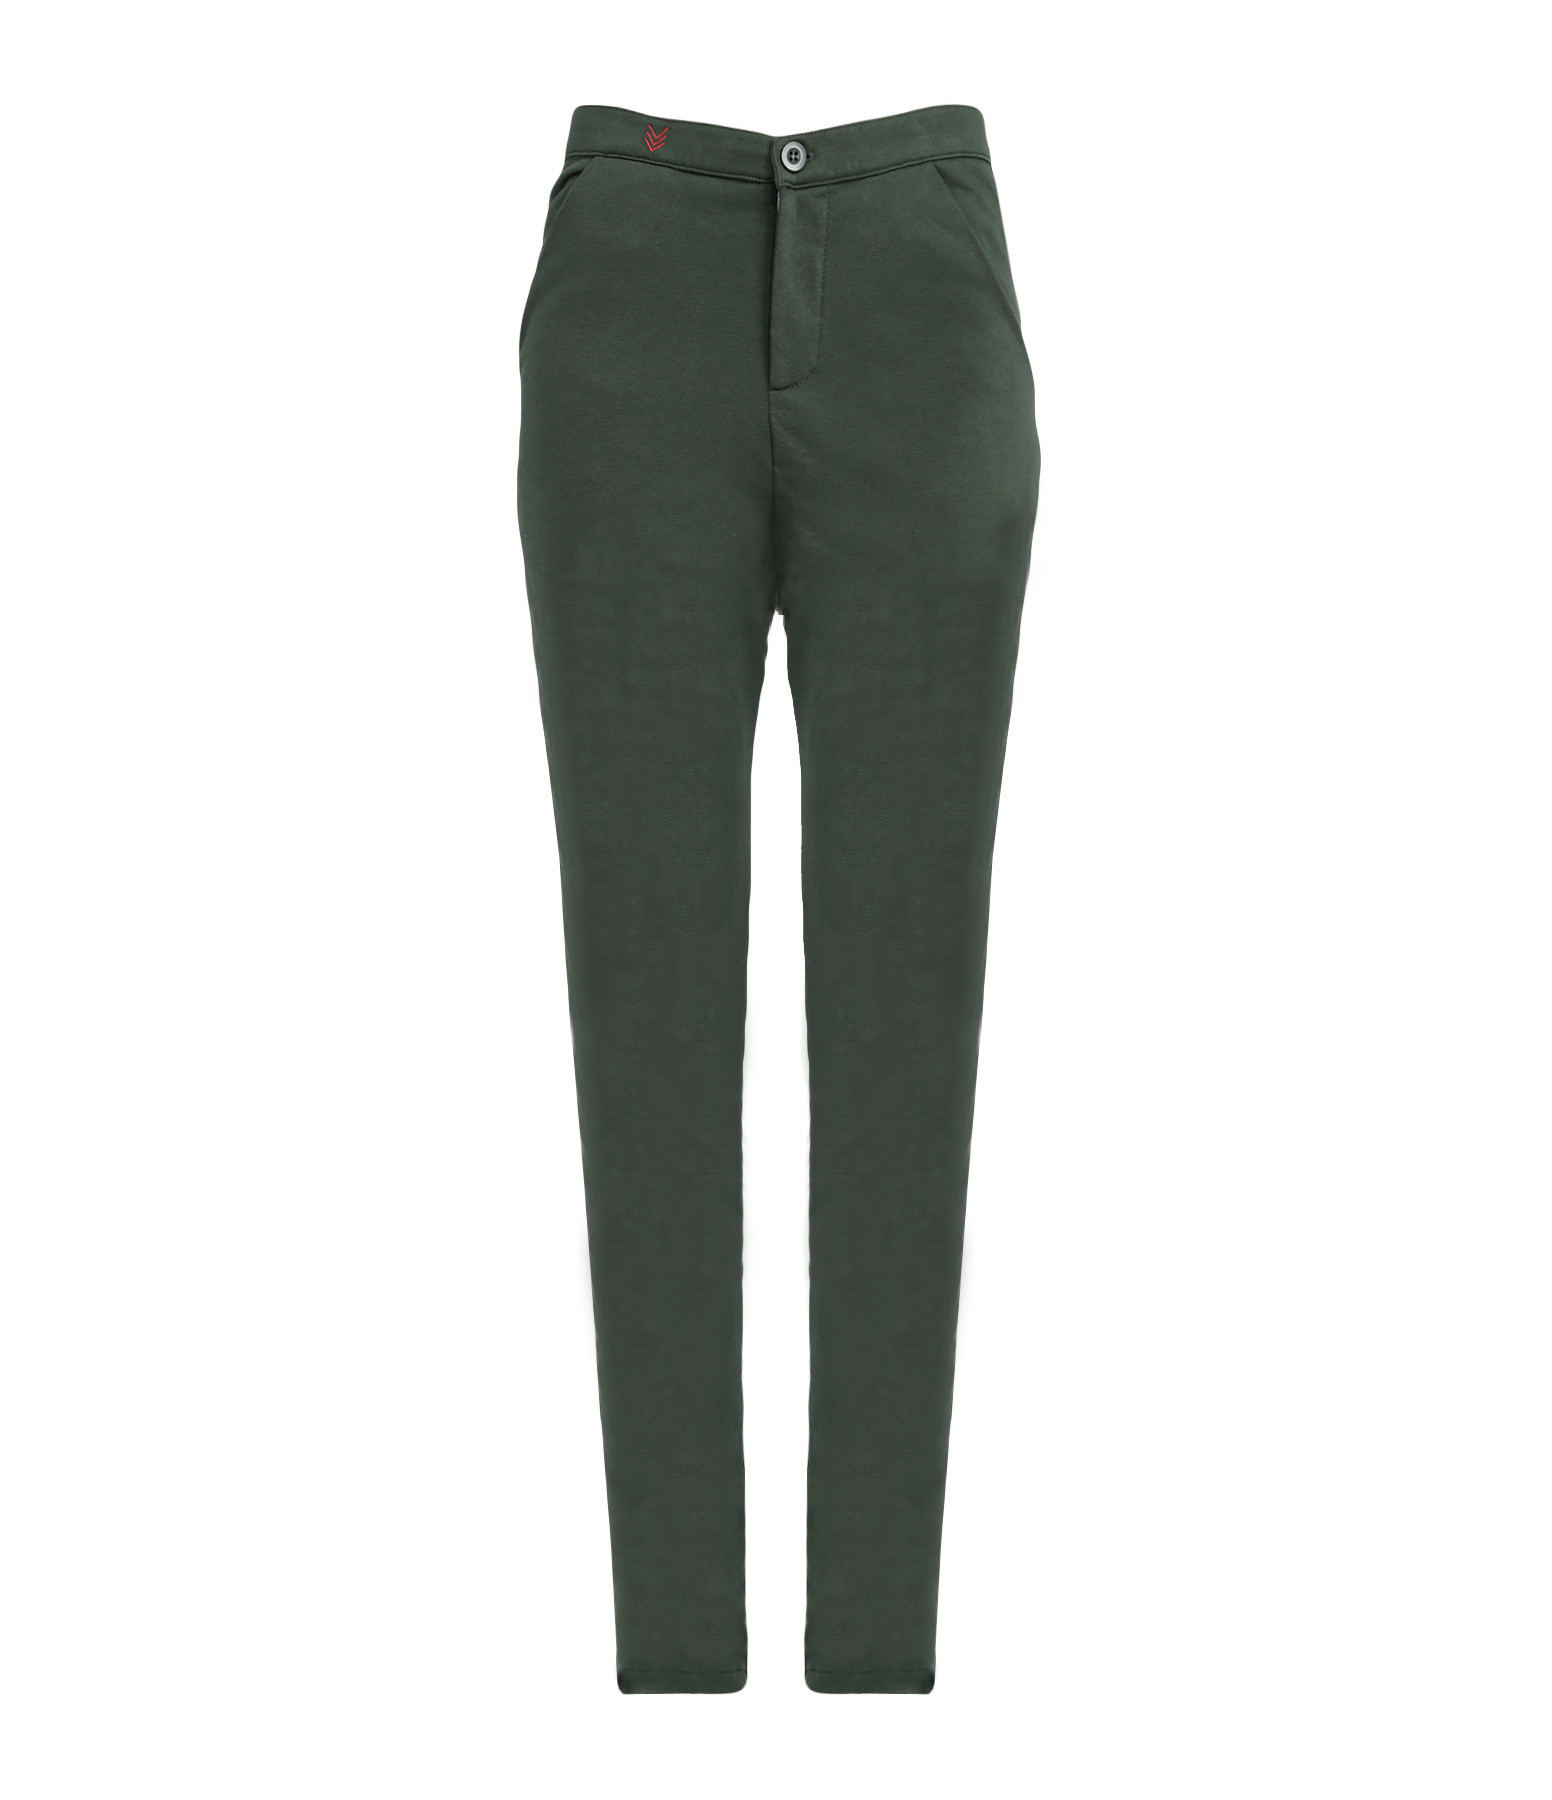 JUNE 7.2 - Pantalon Notting Hill Coton Kaki